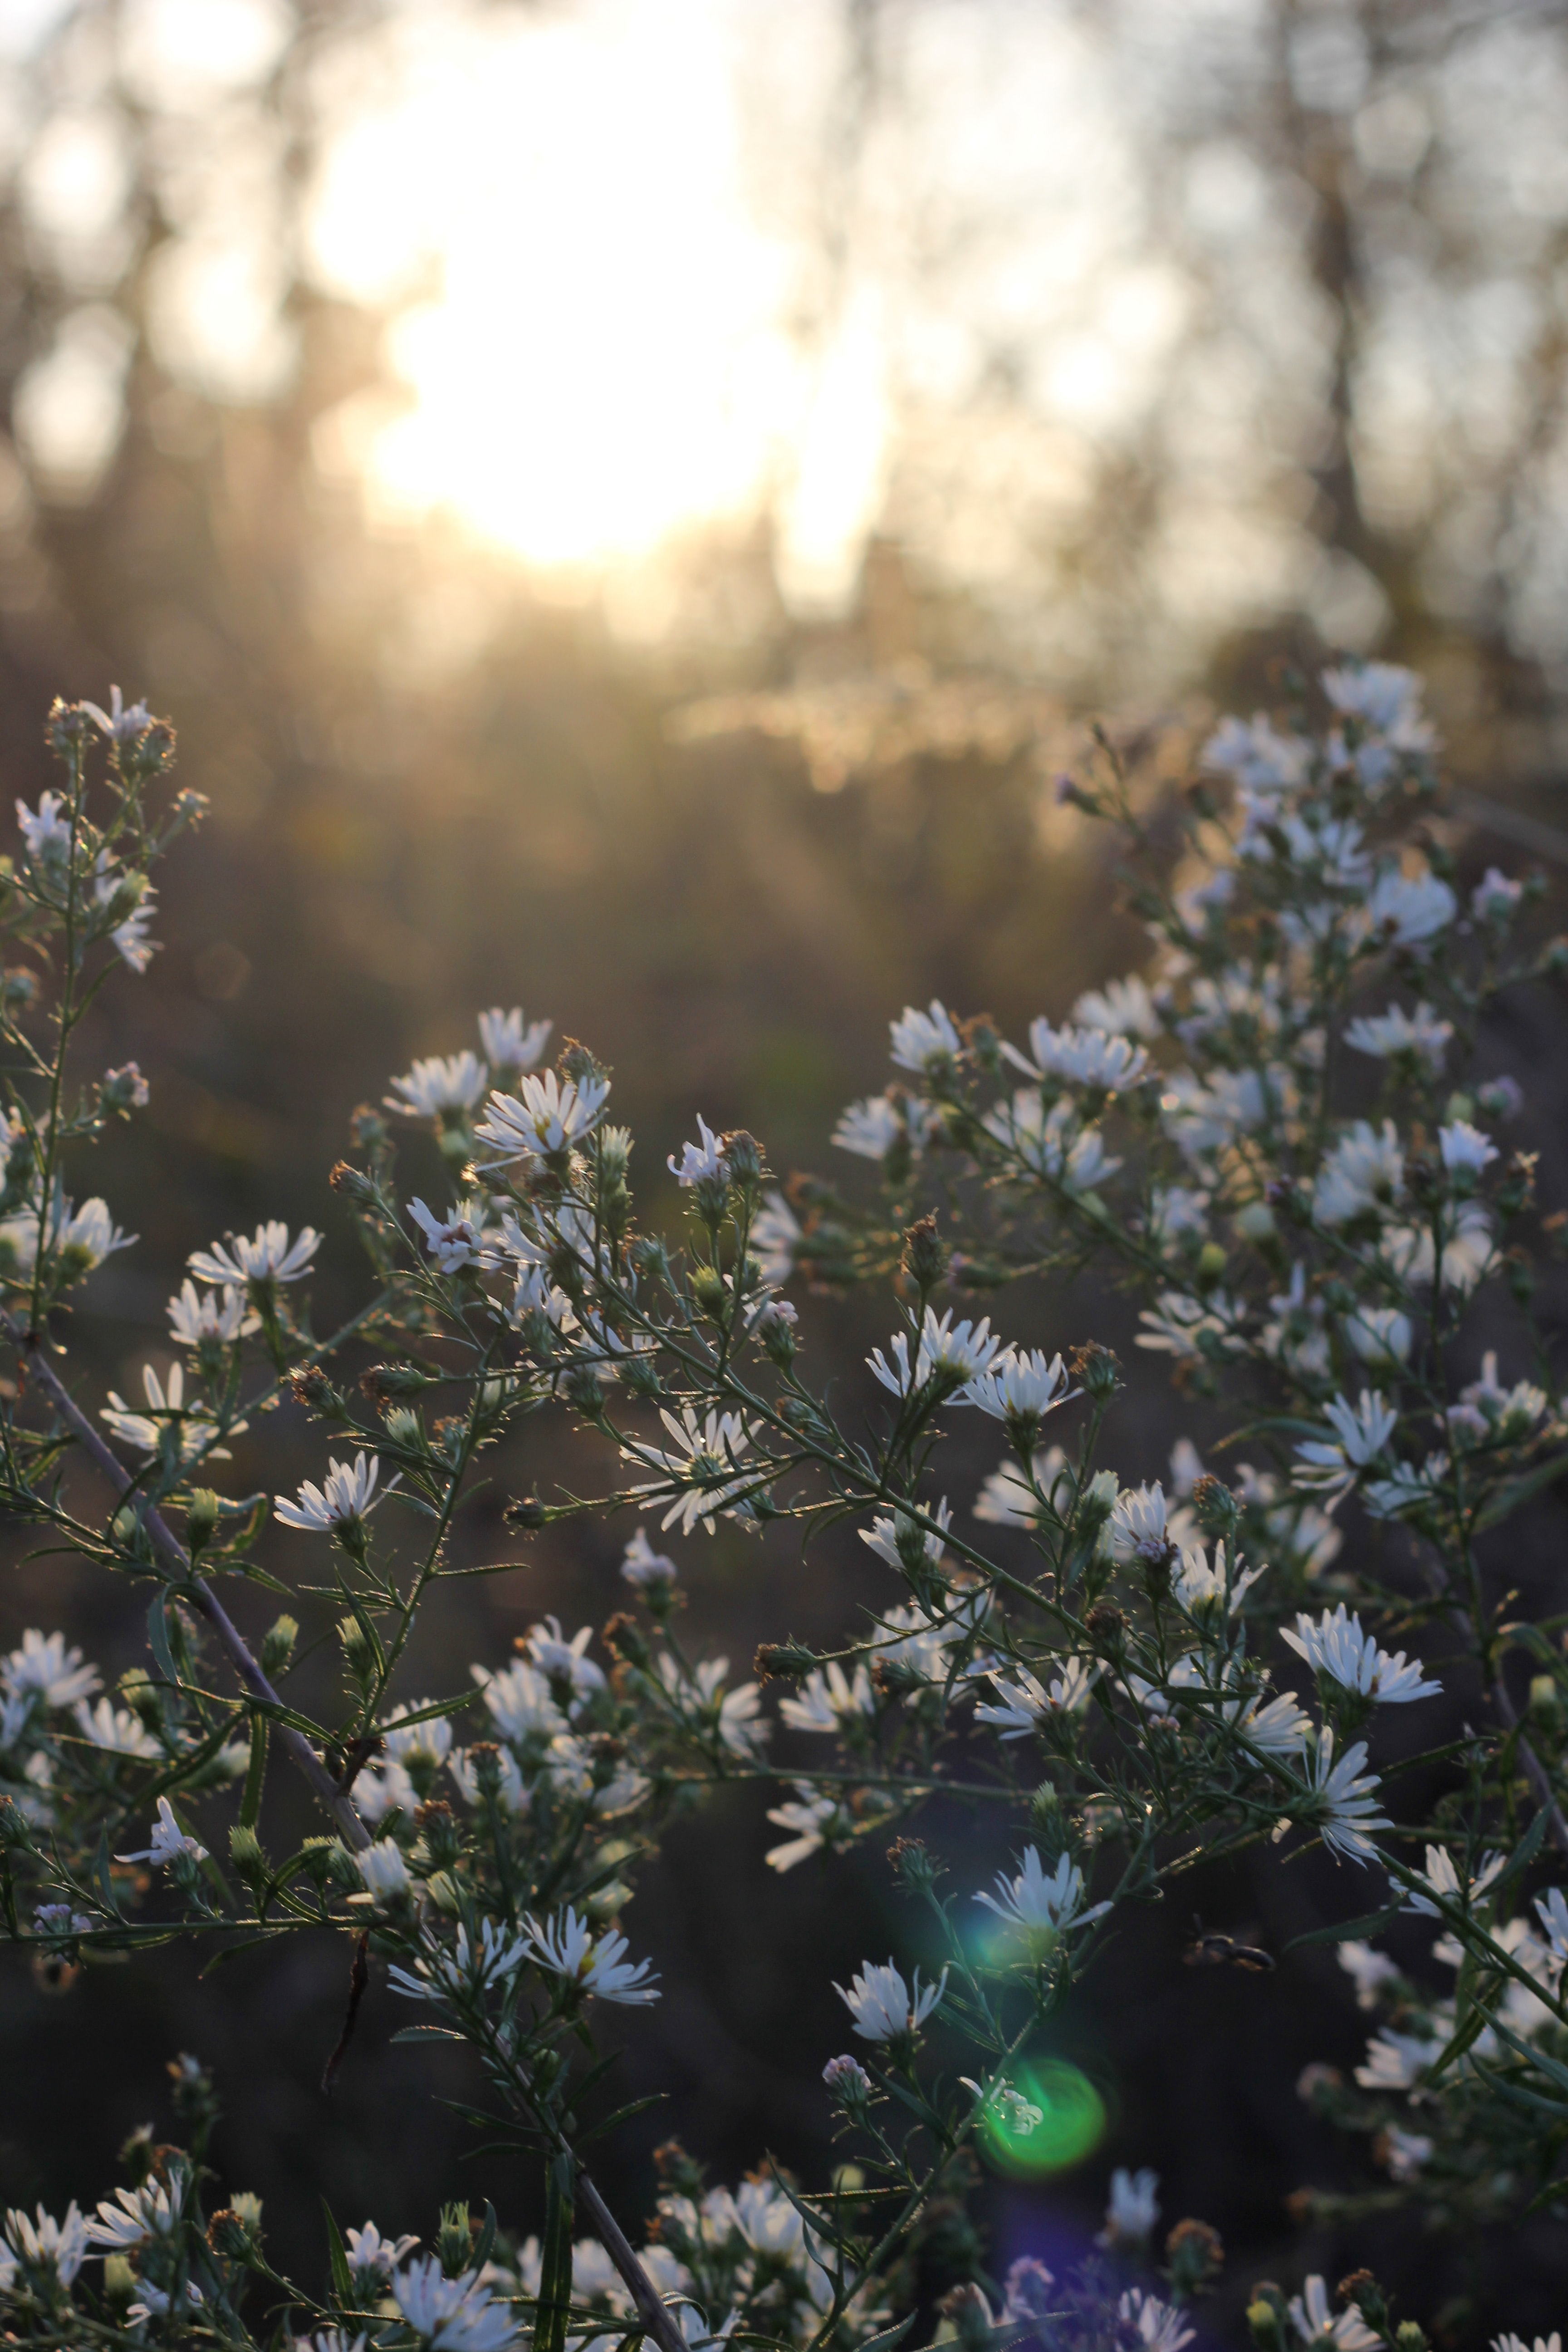 White daisy flowers in nature in bloom at sunrise in Spring